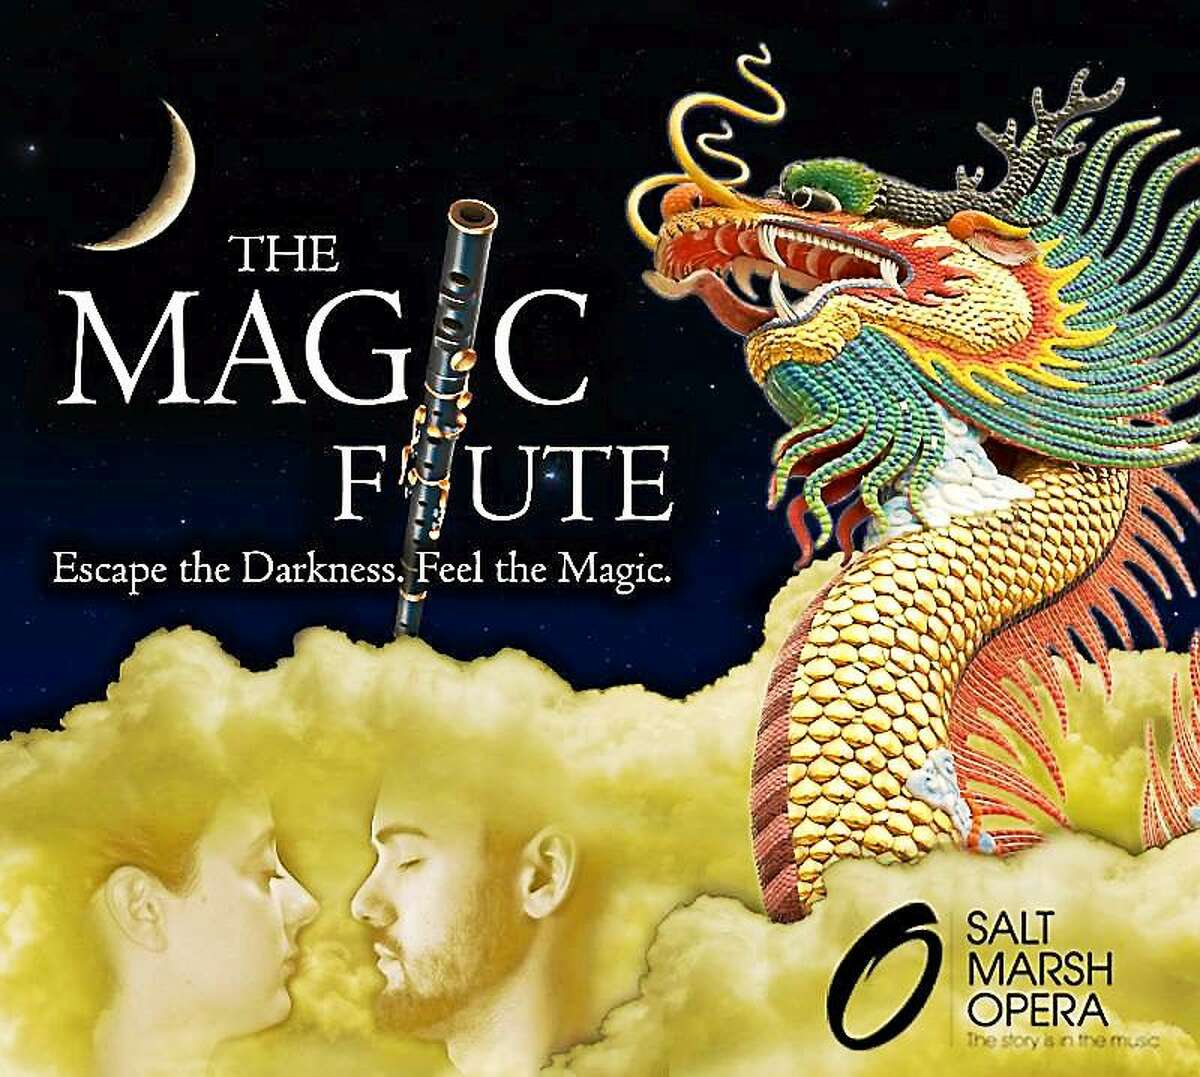 """""""The Magic Flute"""" tells the story of a prince plagued by a serpent and lost in a distant land, an opera that Middletown fifth- and sixth-graders will enjoy on May 18."""